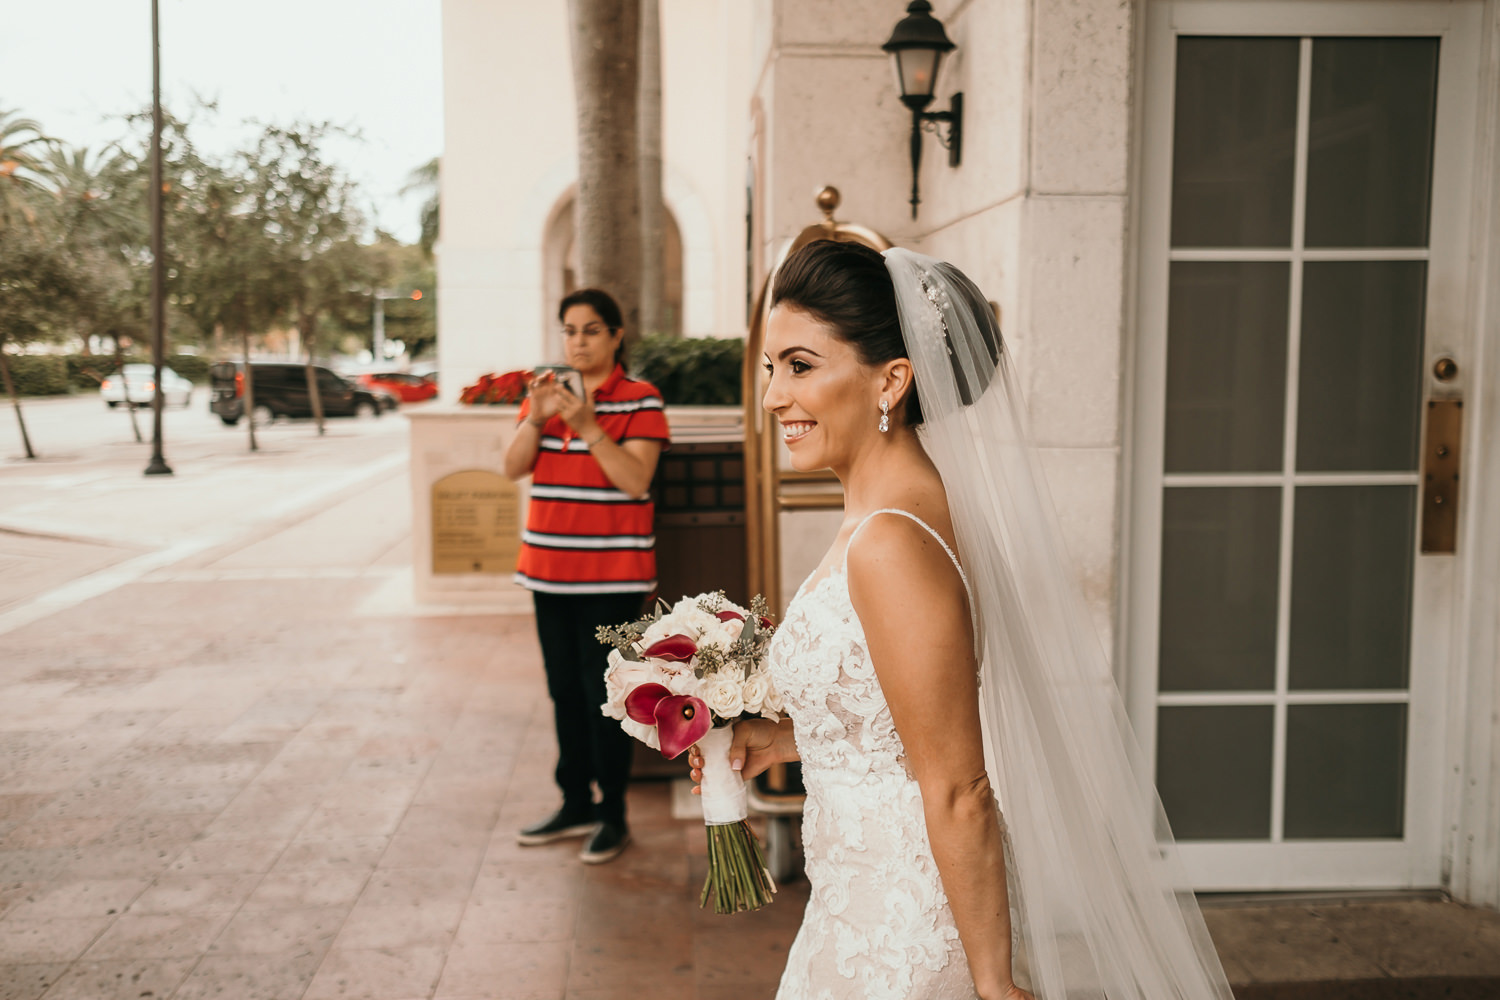 bride cheesing as she exits the hotel lobby